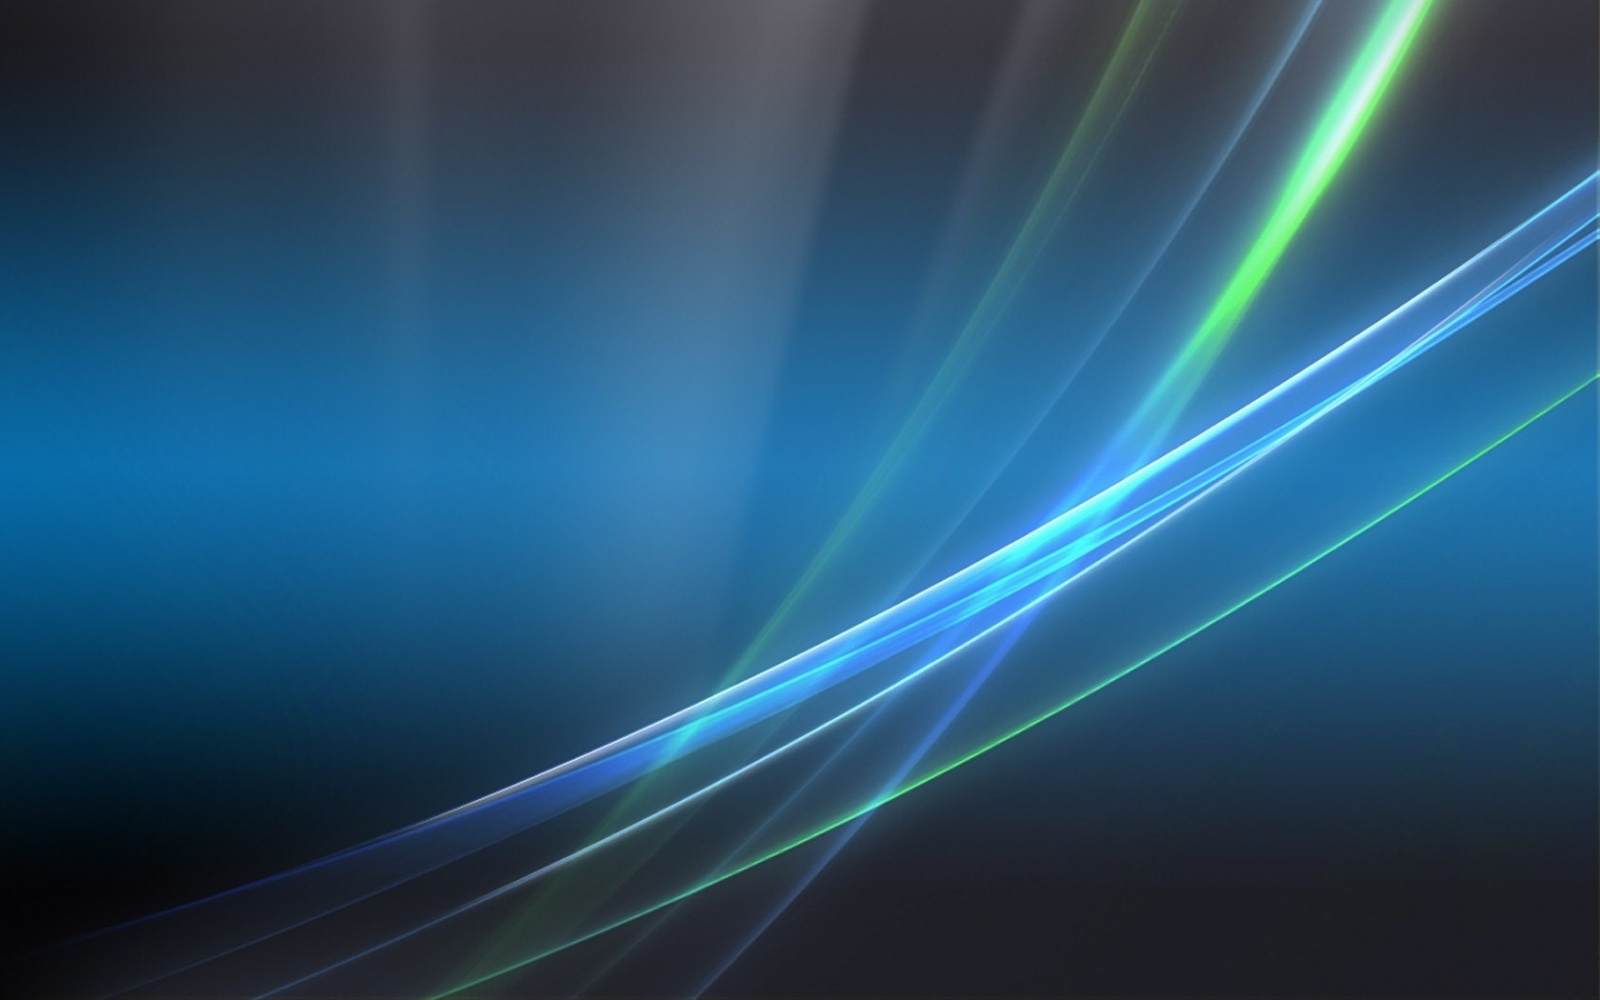 Windows Vista Blue | Wallpaper